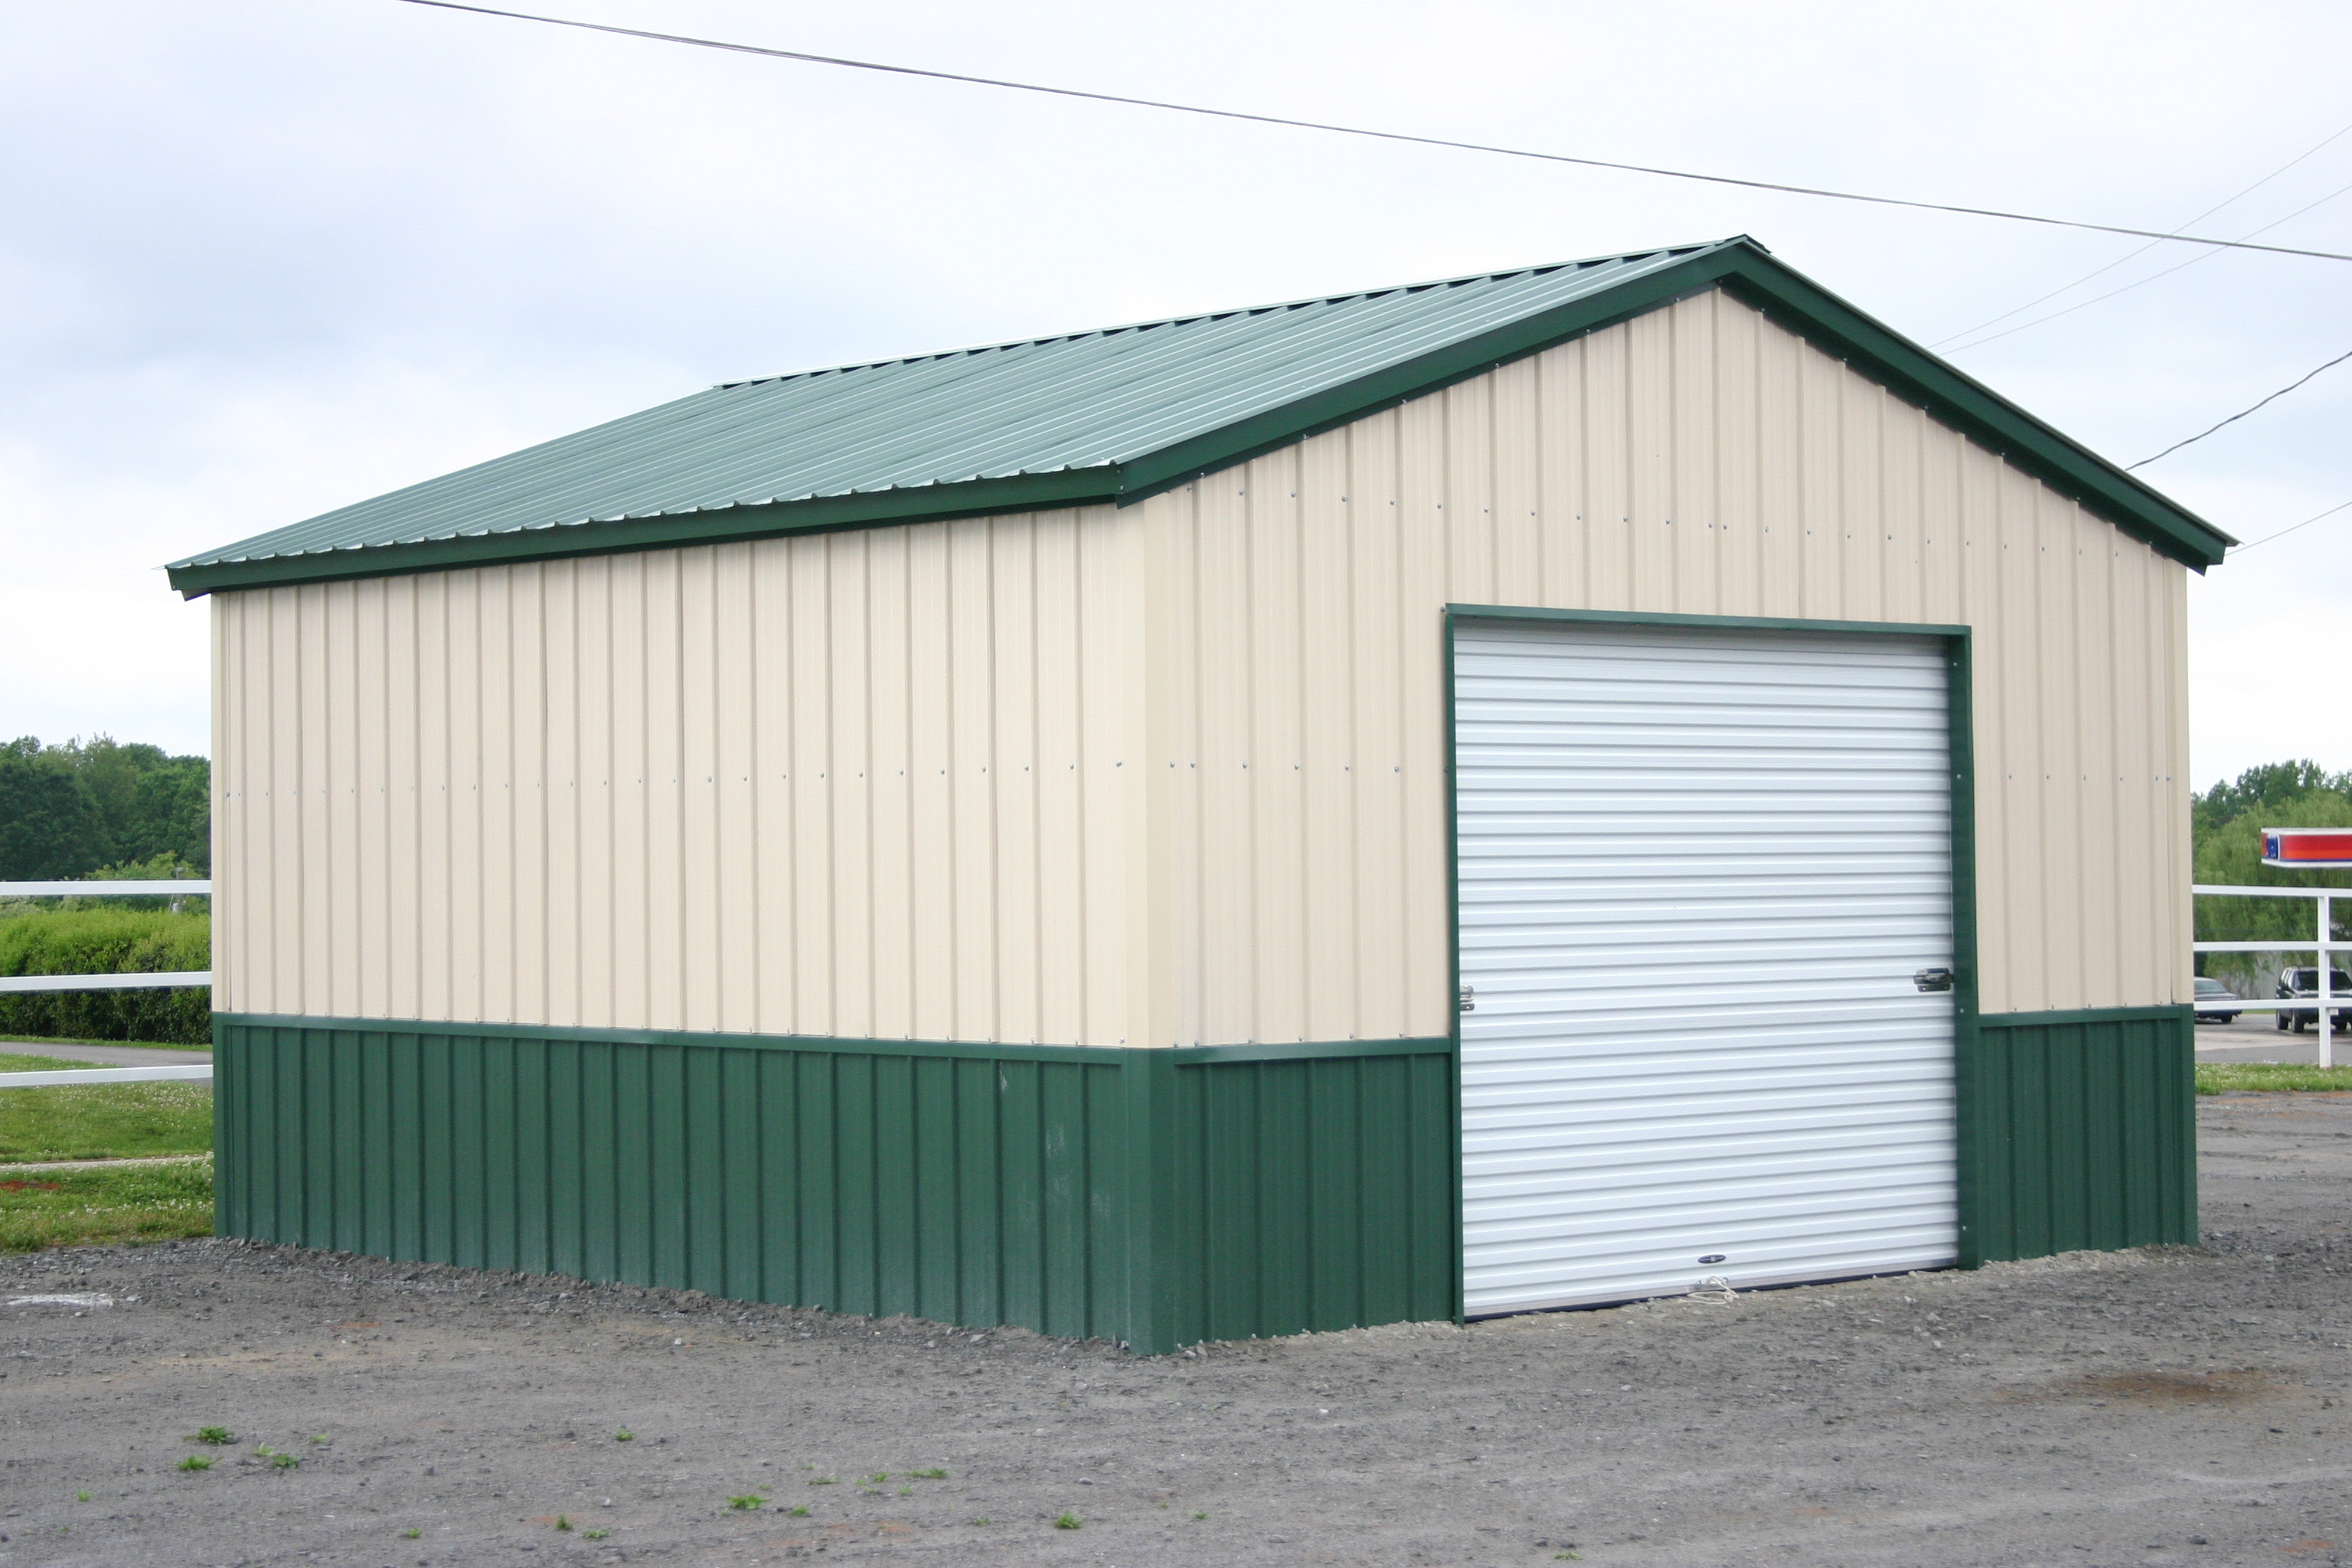 Backyard plan idea: Information Prices for amish sheds